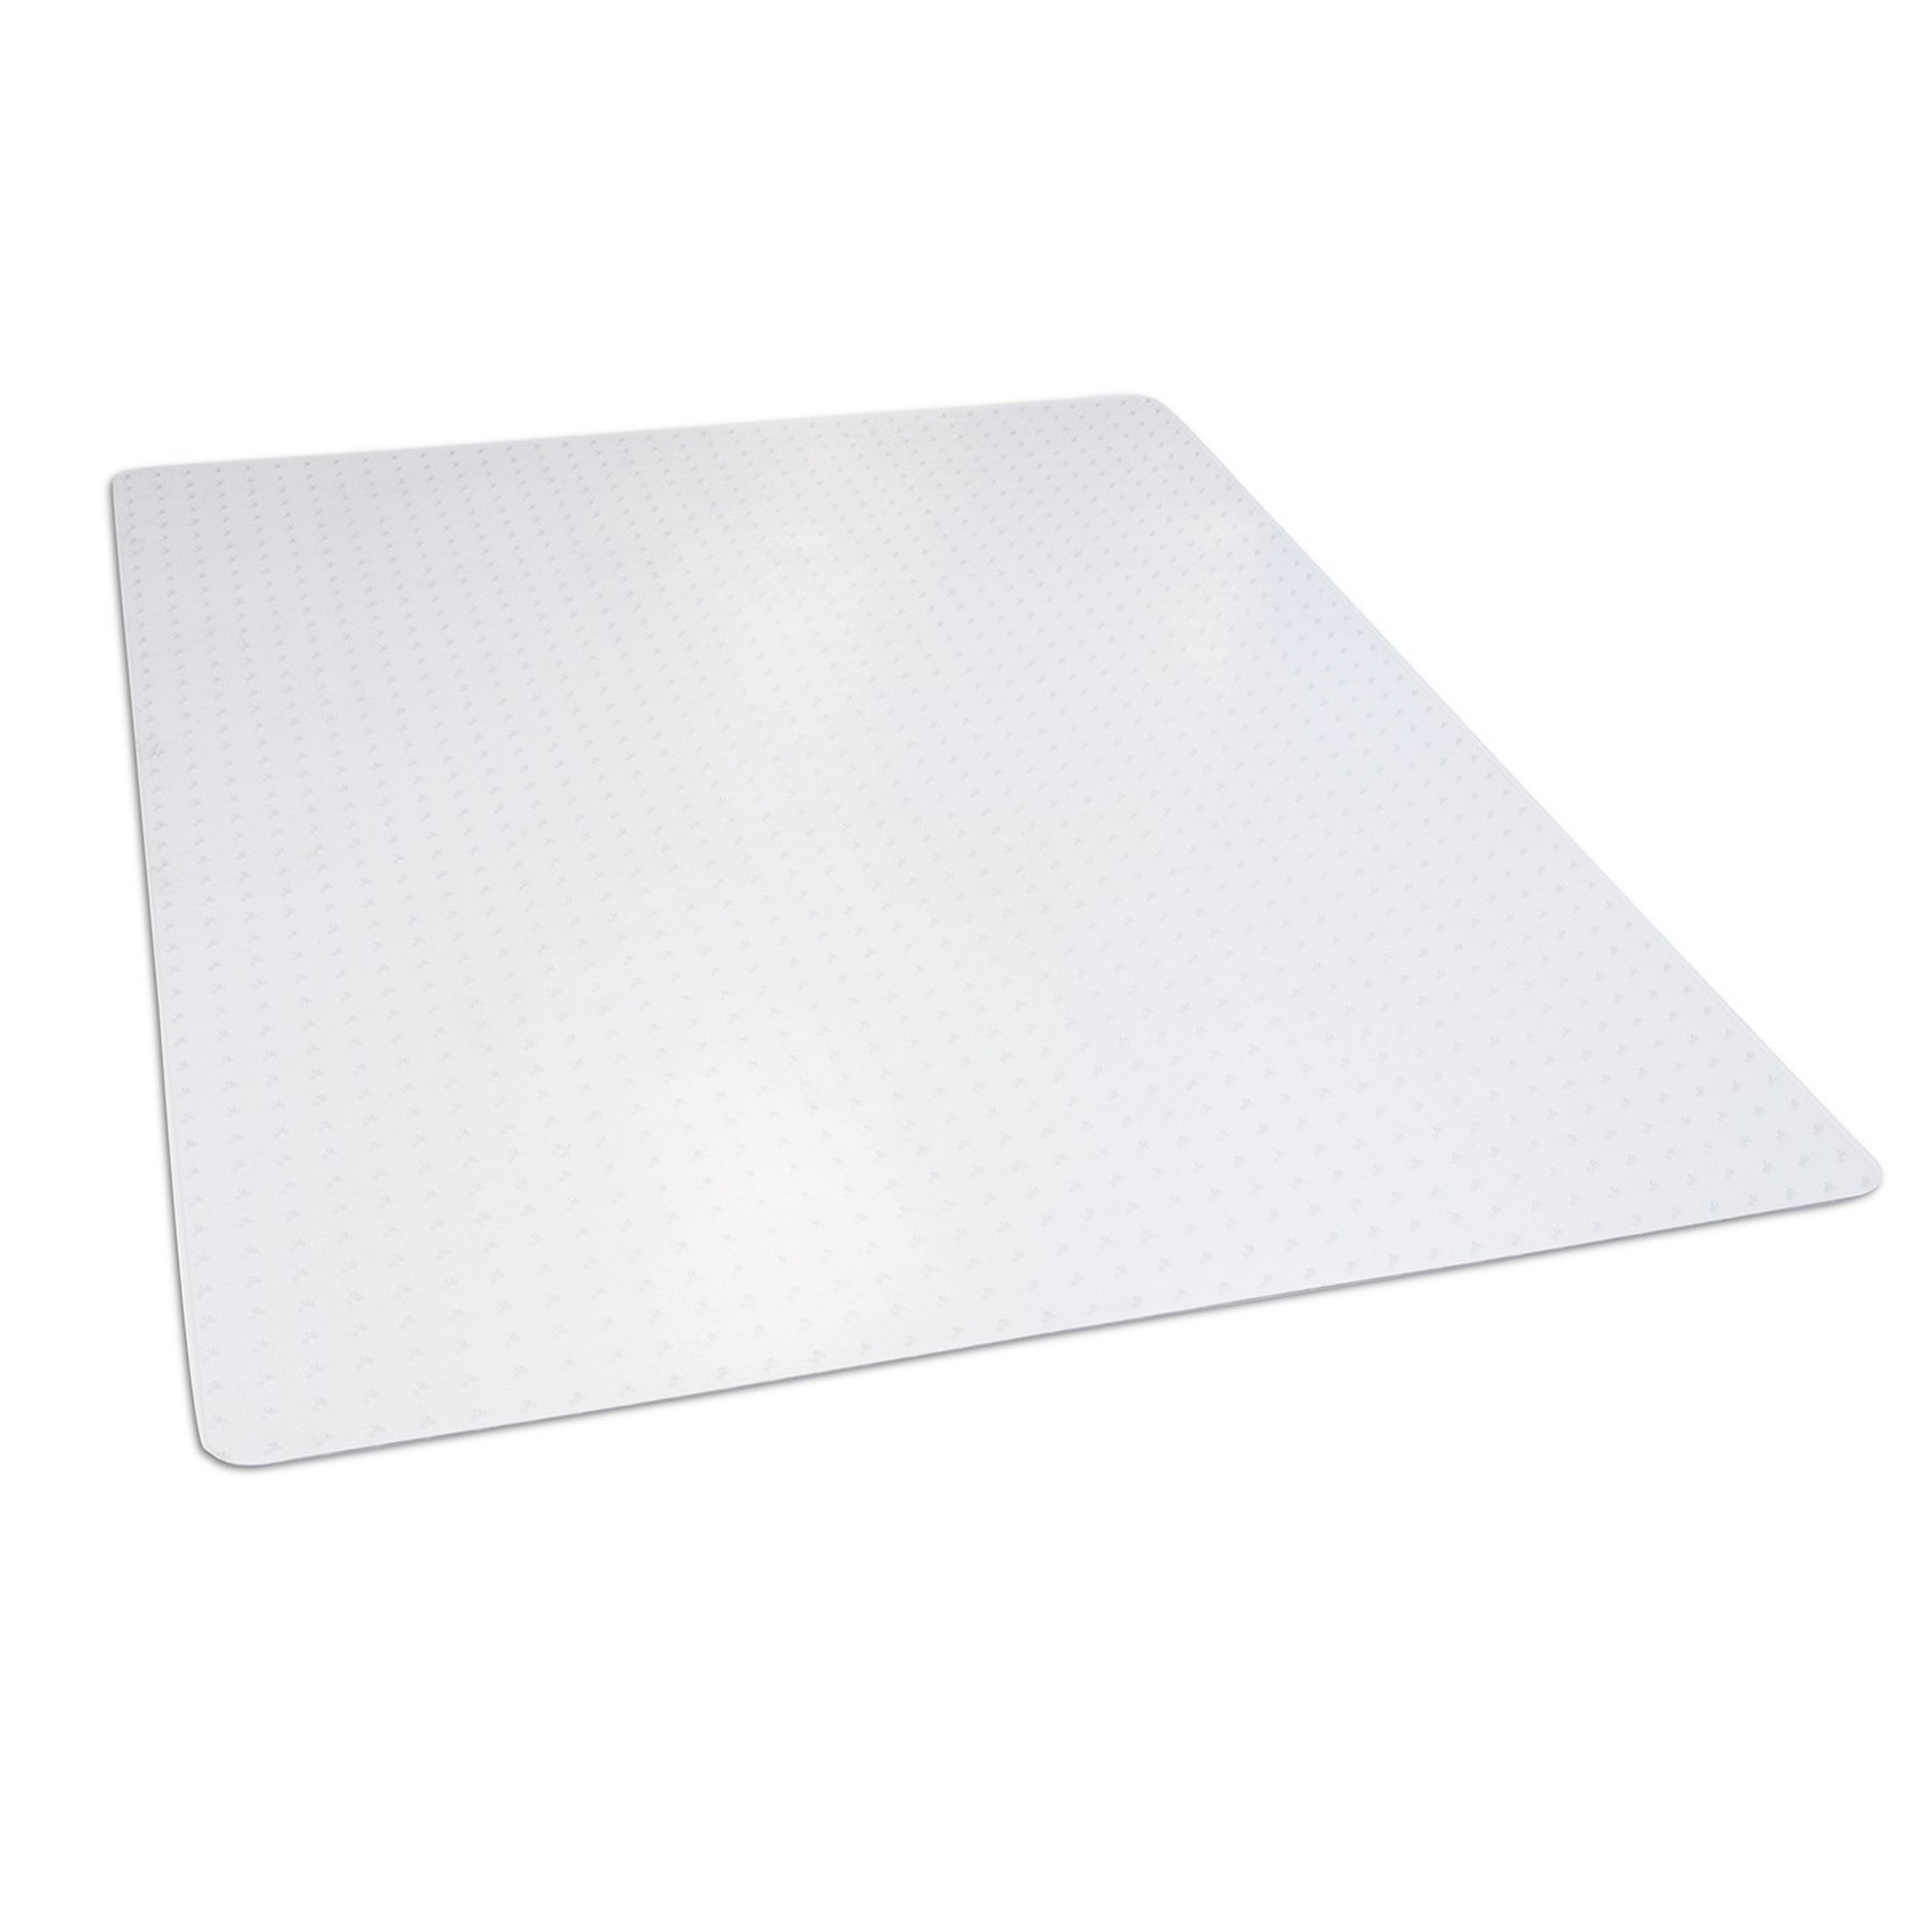 Dimex 46''x 60'' Clear Rectangle Office Chair Mat For Low Pile Carpet, Made In The USA, BPA And Phthalate Free, C532001G by Dimex